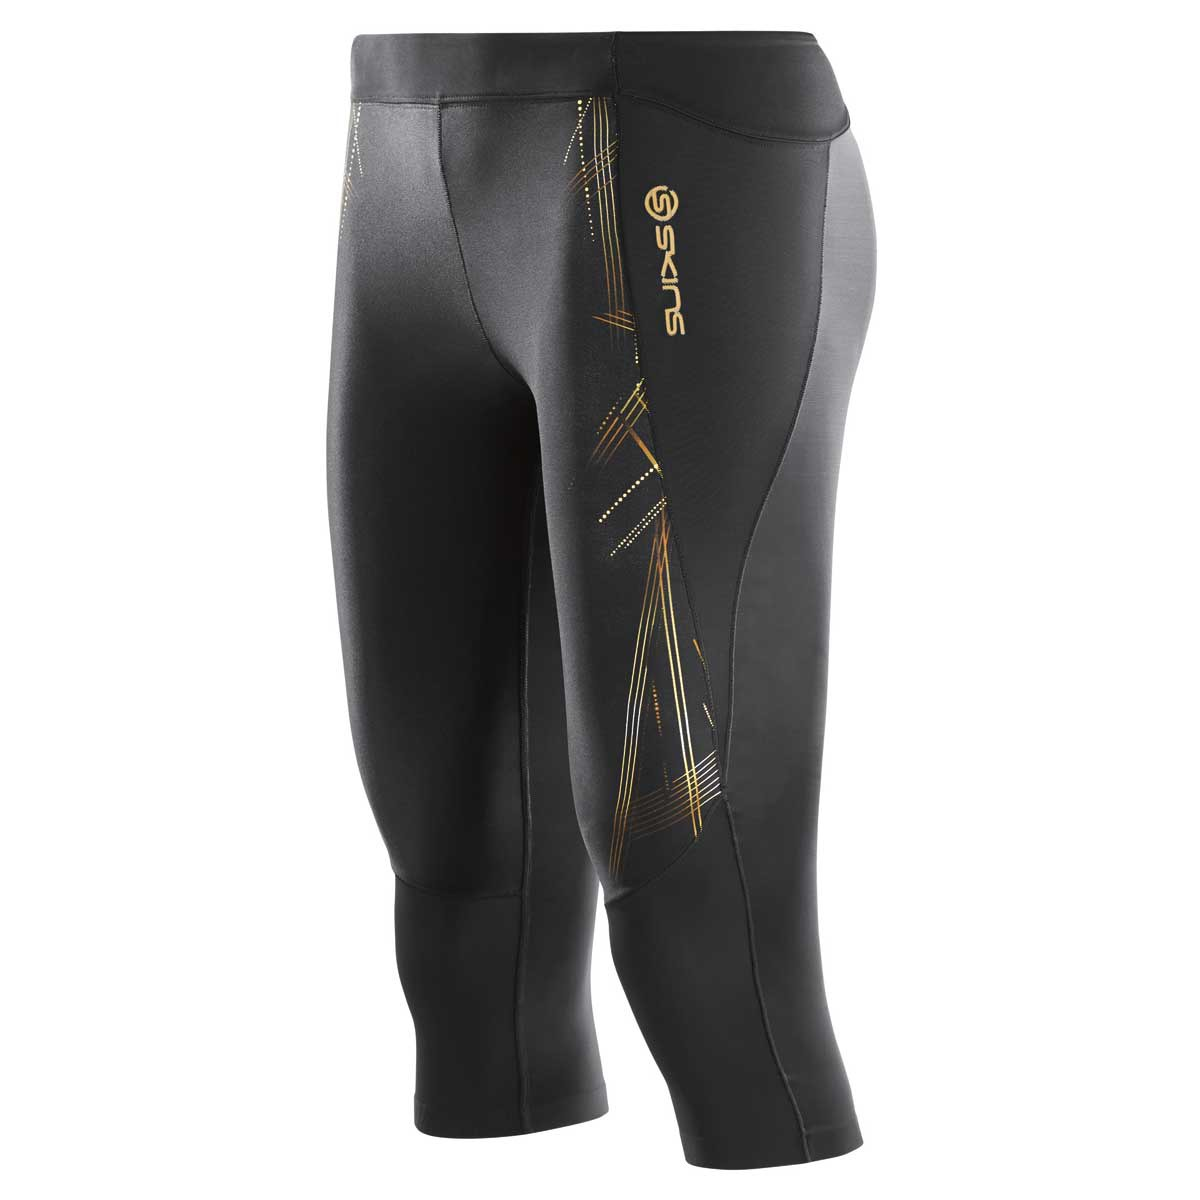 Skins A400 3 4 Compression Running Sport Tights - Womens - Black ... 046bdf60e